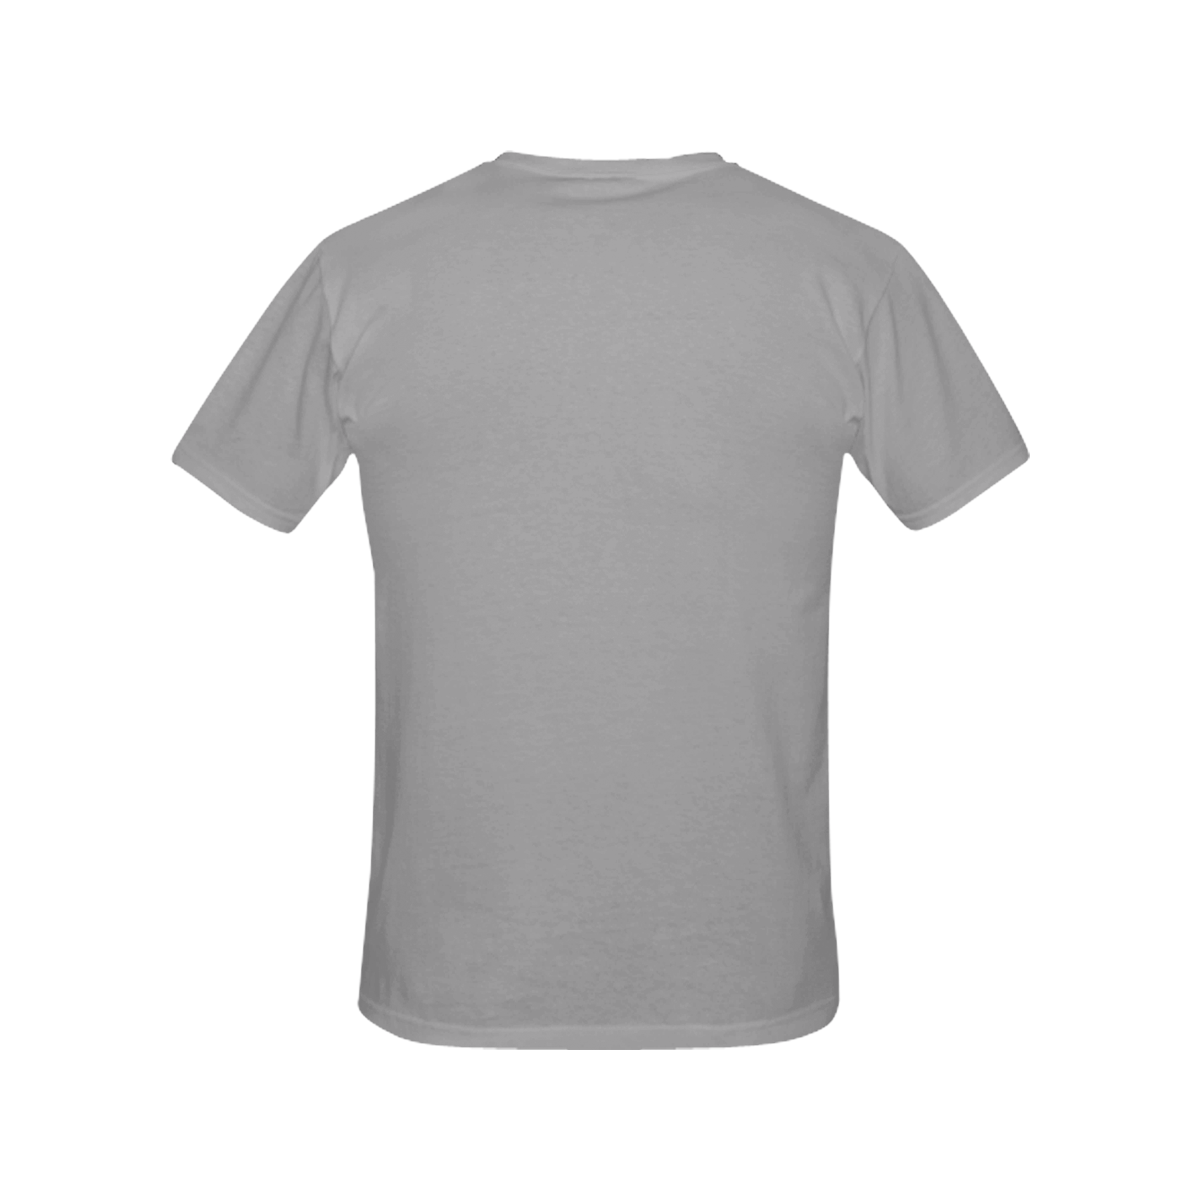 Grey All Over Print T-Shirt for Women (USA Size) (Model T40)